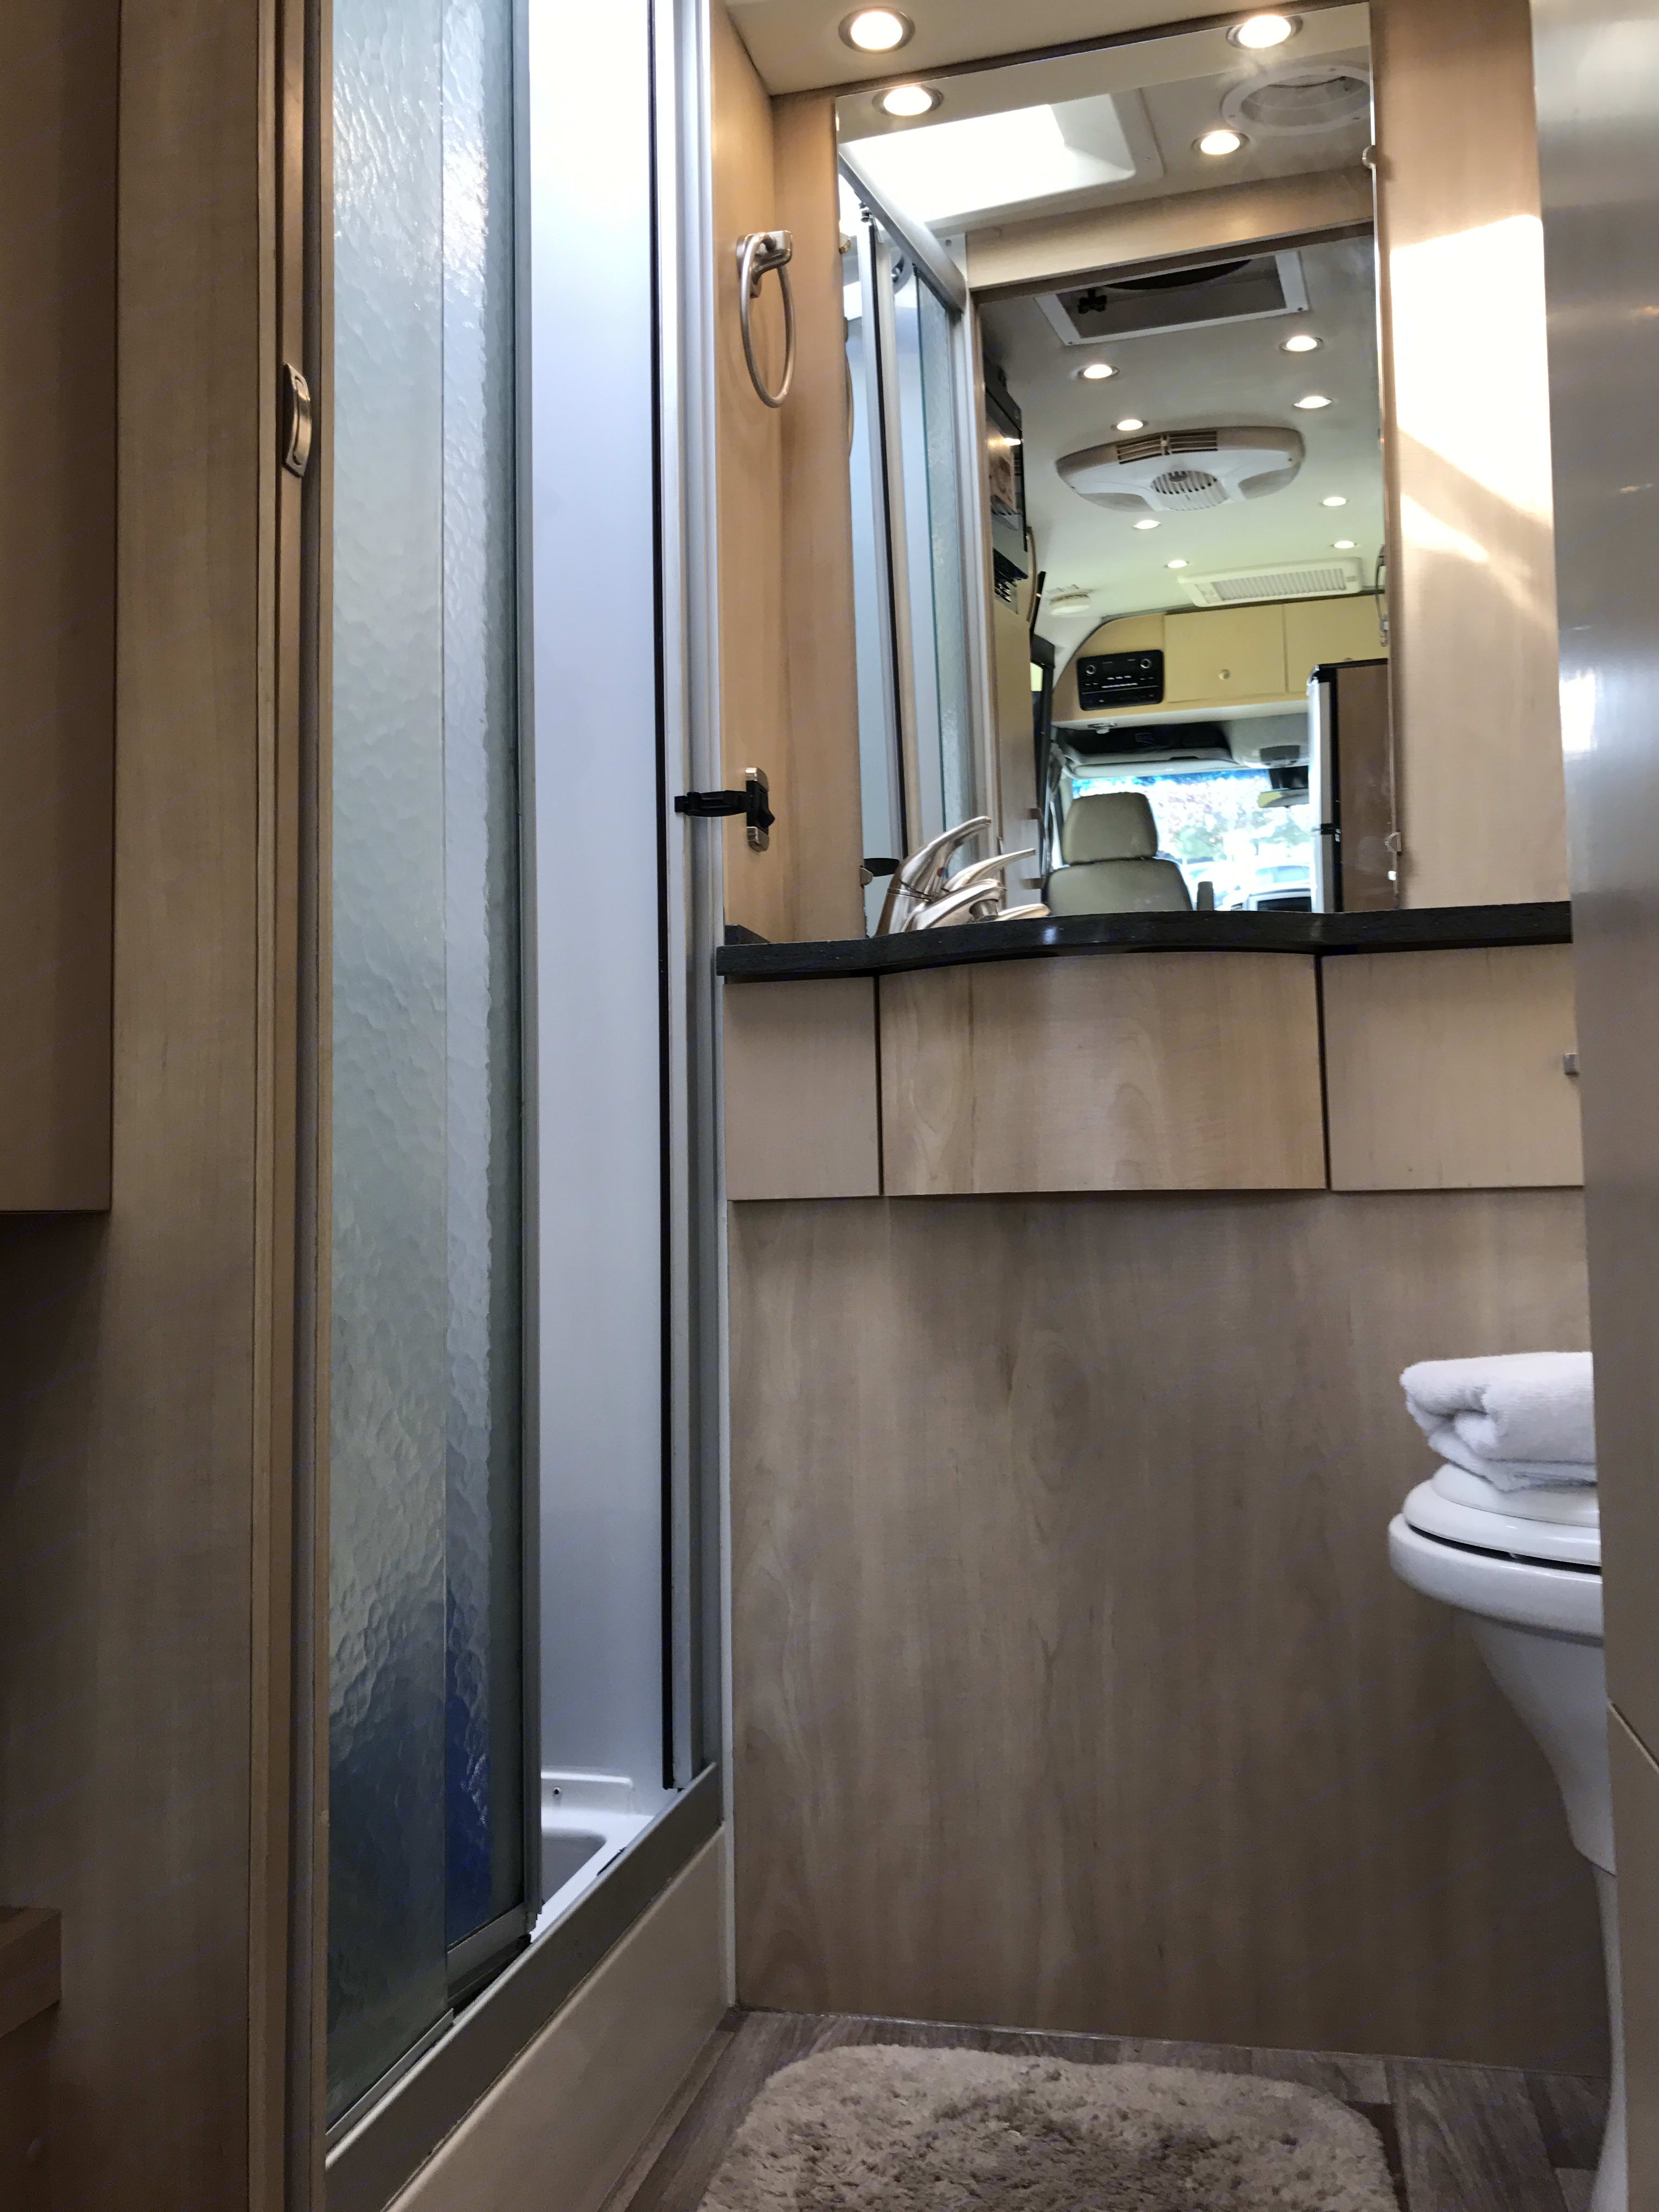 Beautiful bath with separate stand up shower. . Leisure Travel Free Spirit 2016